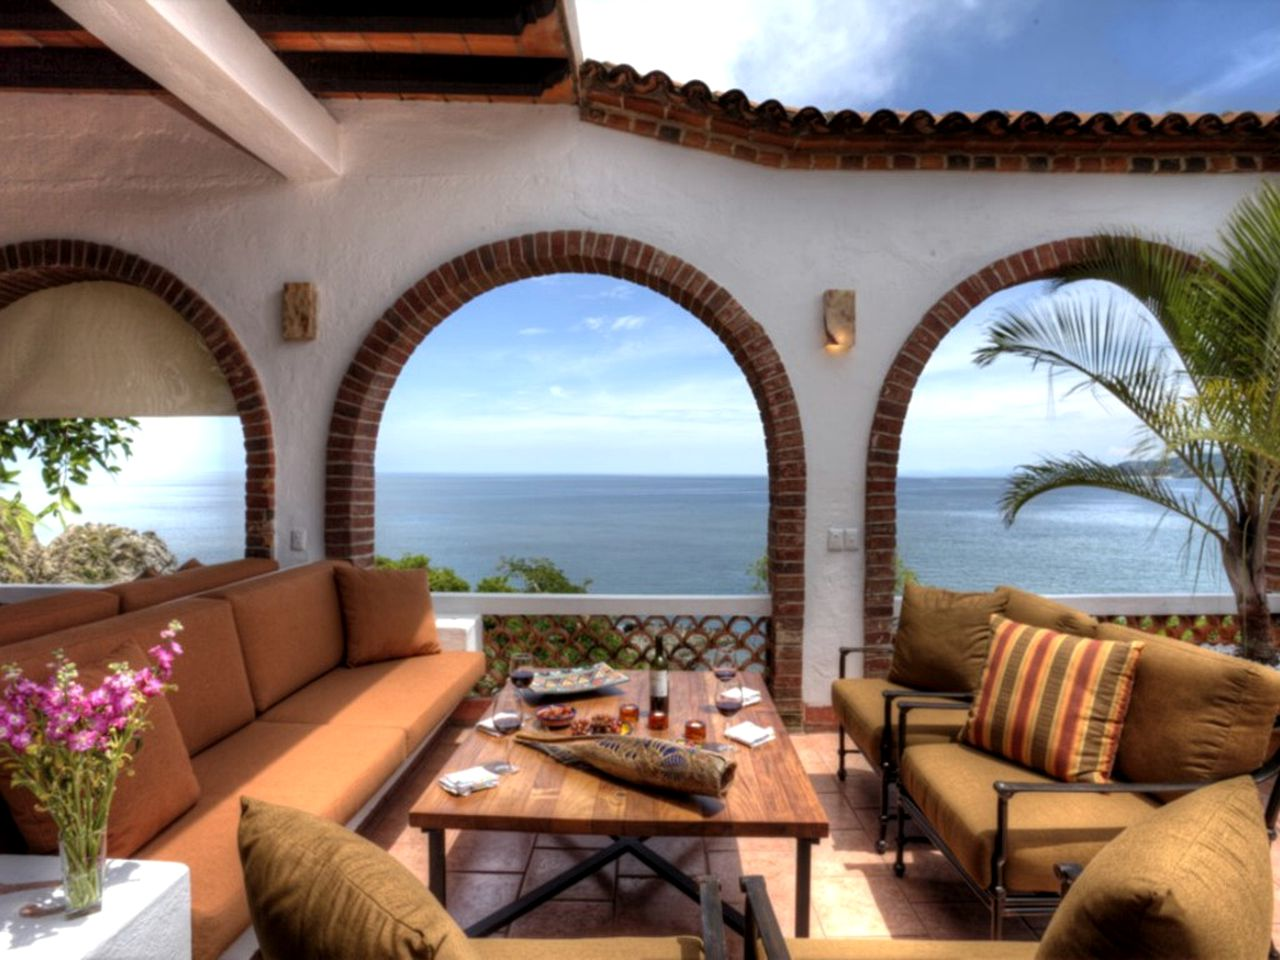 Villas in Sayulita: beachfront rentals (Sayulita, Nayarit, Mexico)